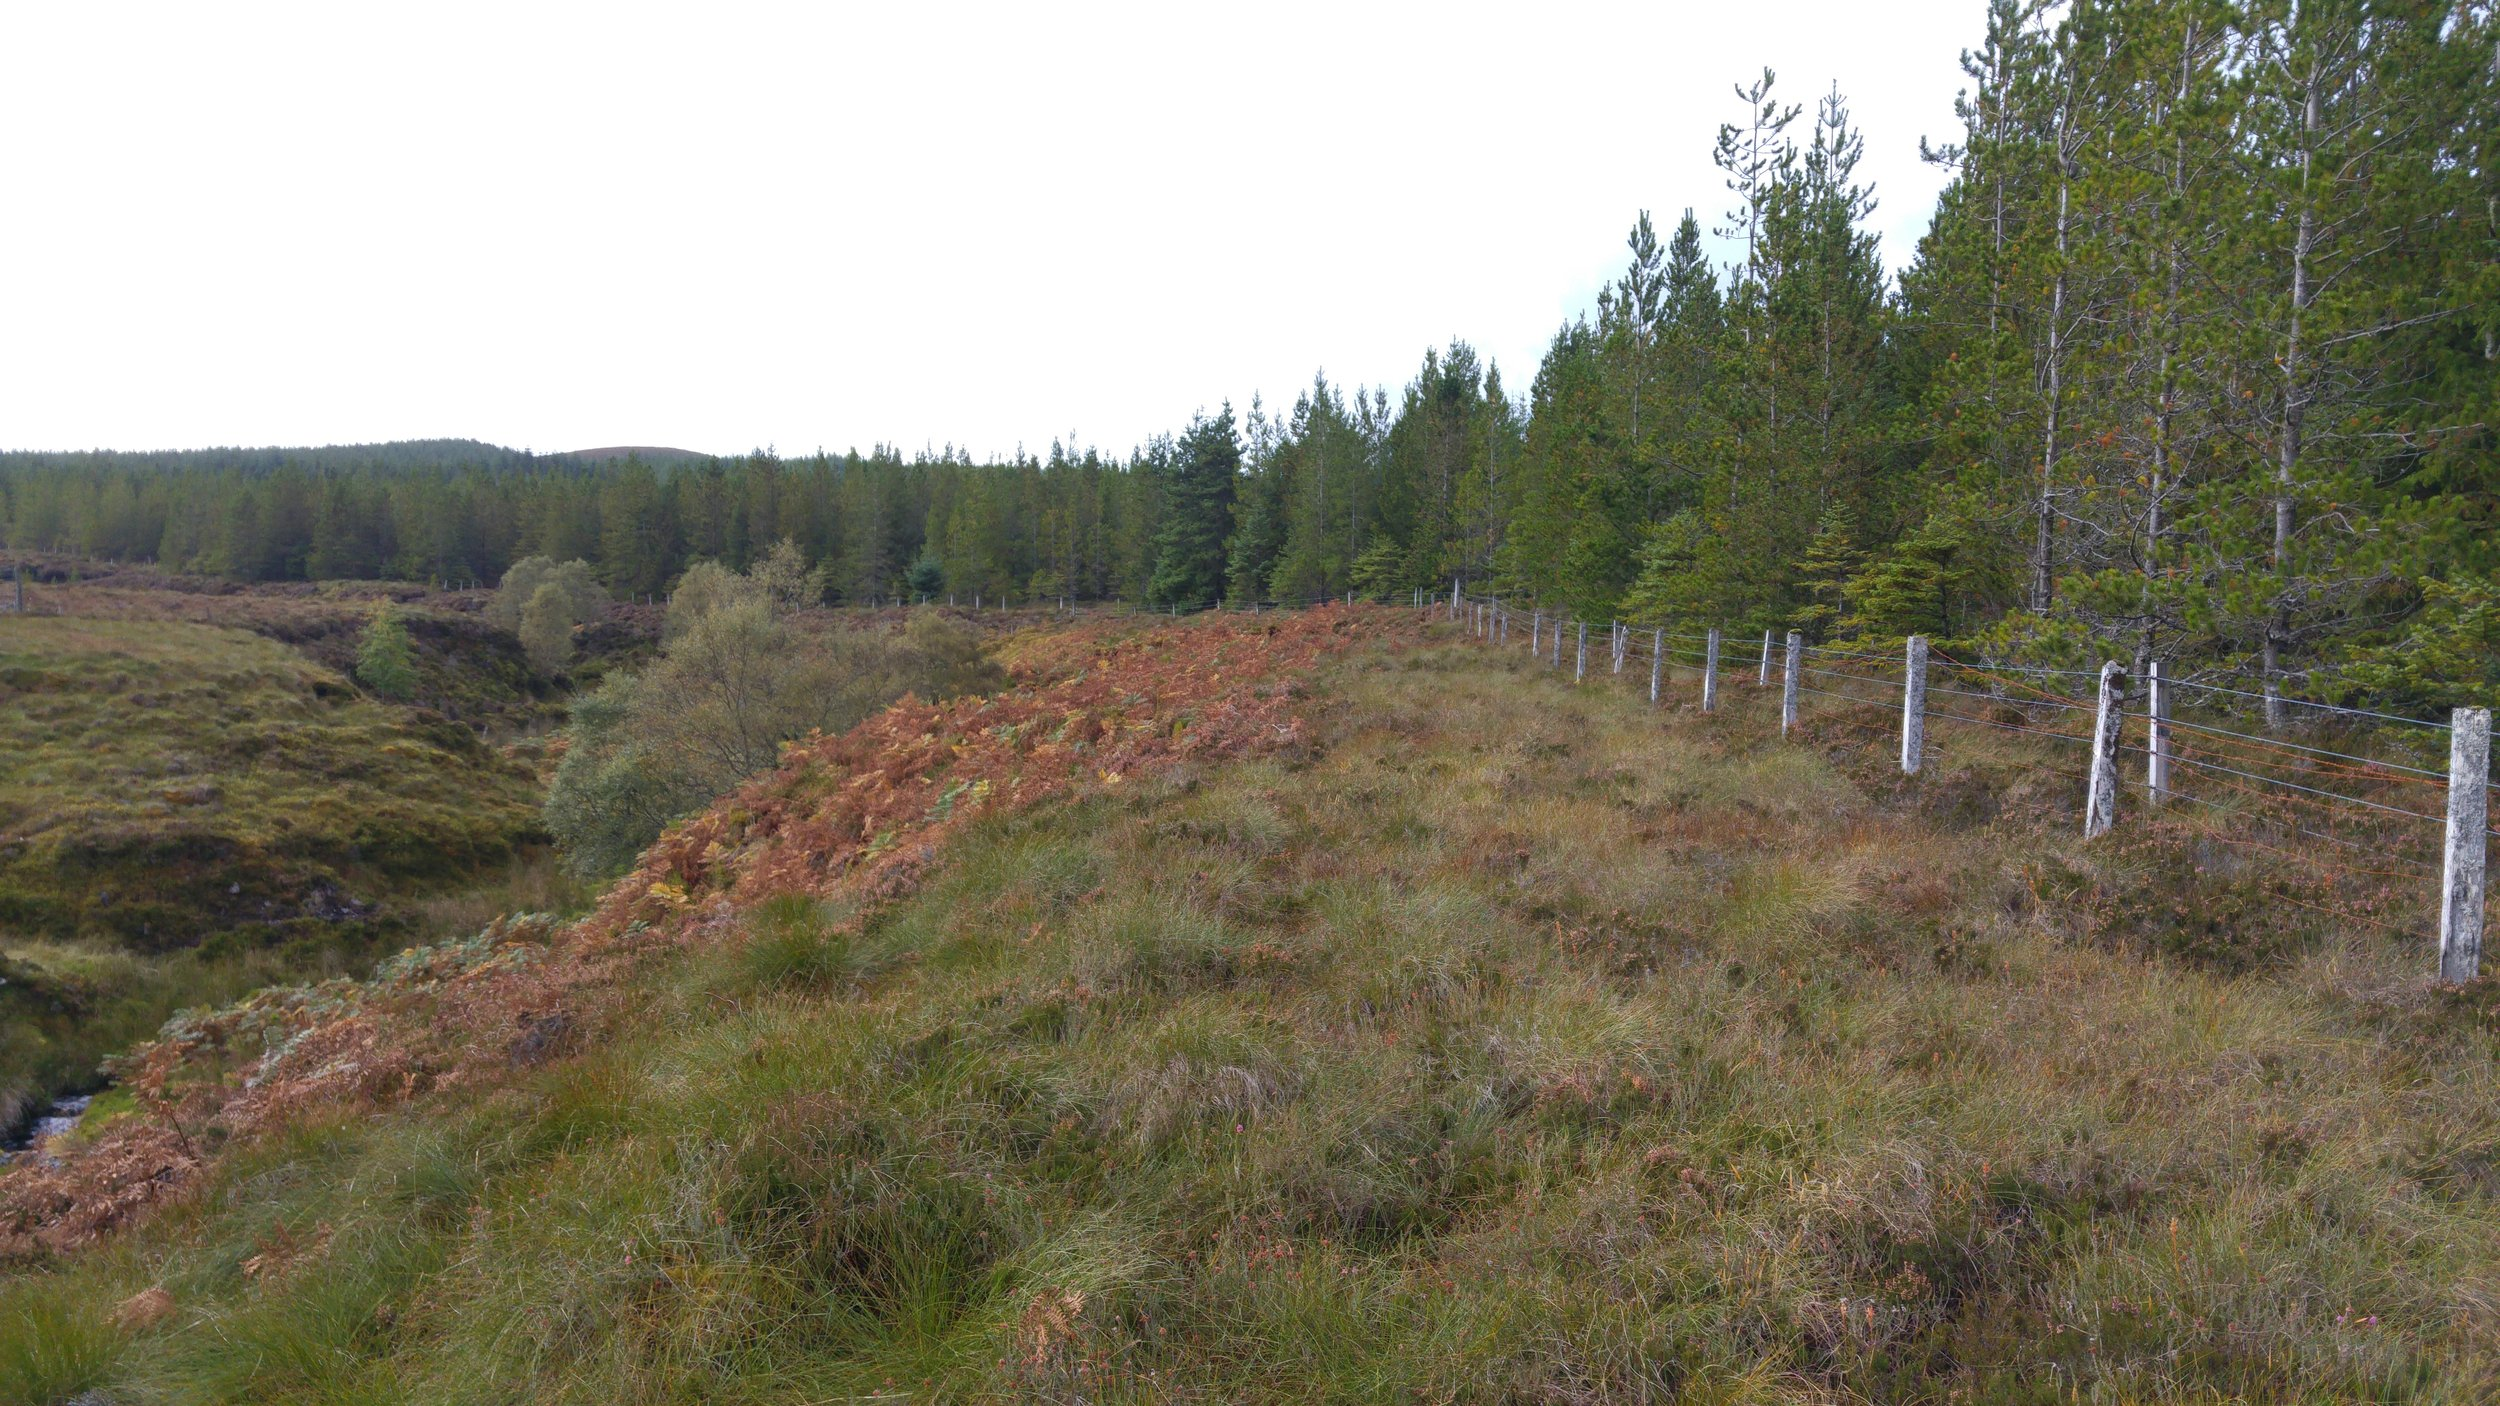 Here, the watercourse and its gulley can be seen on the left hand side of the picture. On the right, the 1970s plantations can be seen close to the riparian zone. Those conifers were planted on peat that is probably approaching two metres deep. As a result, the growth rate and quality is not very good even after almost forty years. An extensive stand of bracken ( Pteridium aquilinum ) can be seen in the middle distance. As foresters, we often think that bracken indicates good ground that can support tree growth.  That is true to a degree, but bracken can also grow on very poor ground so one has to also consider its form when visually assessing the ground of its suitability for tree planting (e.g. stand spread and height).  In this case, the bracken was of reasonable form but the peat depth was too deep for tree planting without substantial - and undesirable - management inputs.  I suspect that the bracken was growing well because of nutrients being washed into the area in which it was growing, rather than an indication of underlying soil fertility. In other words, it was growing in a 'flushed peat'.  Of course, a considerable disadvantage of the presence of bracken on a site is that it will seriously impede tree establishment. Its presence therefore requires control both before and during the tree establishment phase and this adds to the cost of implementing the project.  Considering this cost and the high price of manual labour, chemical controls are the best solution in many situations and at this moment in time.